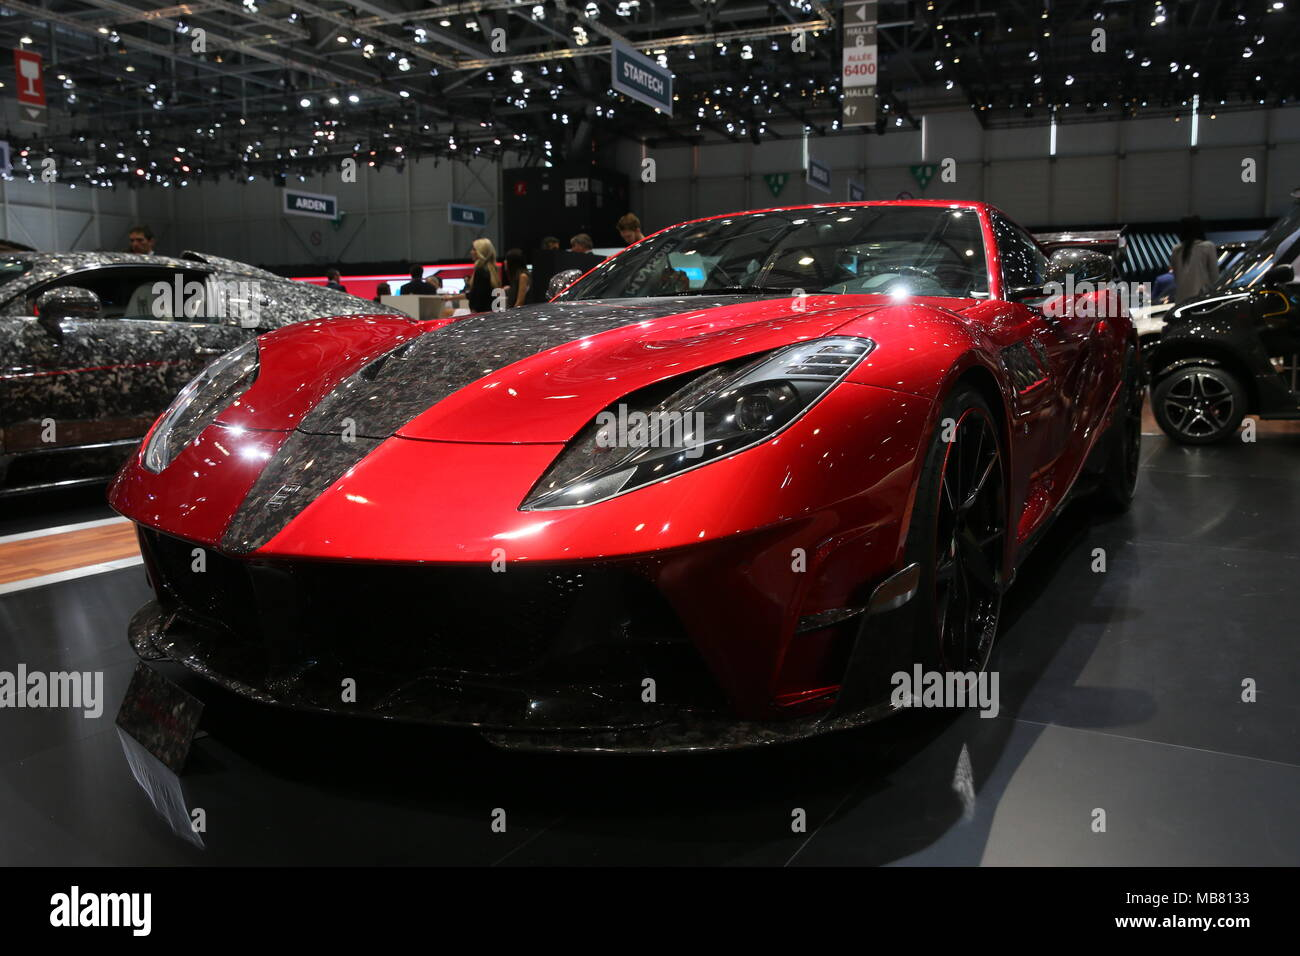 The Cars Of The Geneva International Motor Show Featuring Mansory Stallone Ferrari 812 Superfast Where Geneva Switzerland When 07 Mar 2018 Credit Michael Wright Wenn Com Stock Photo Alamy